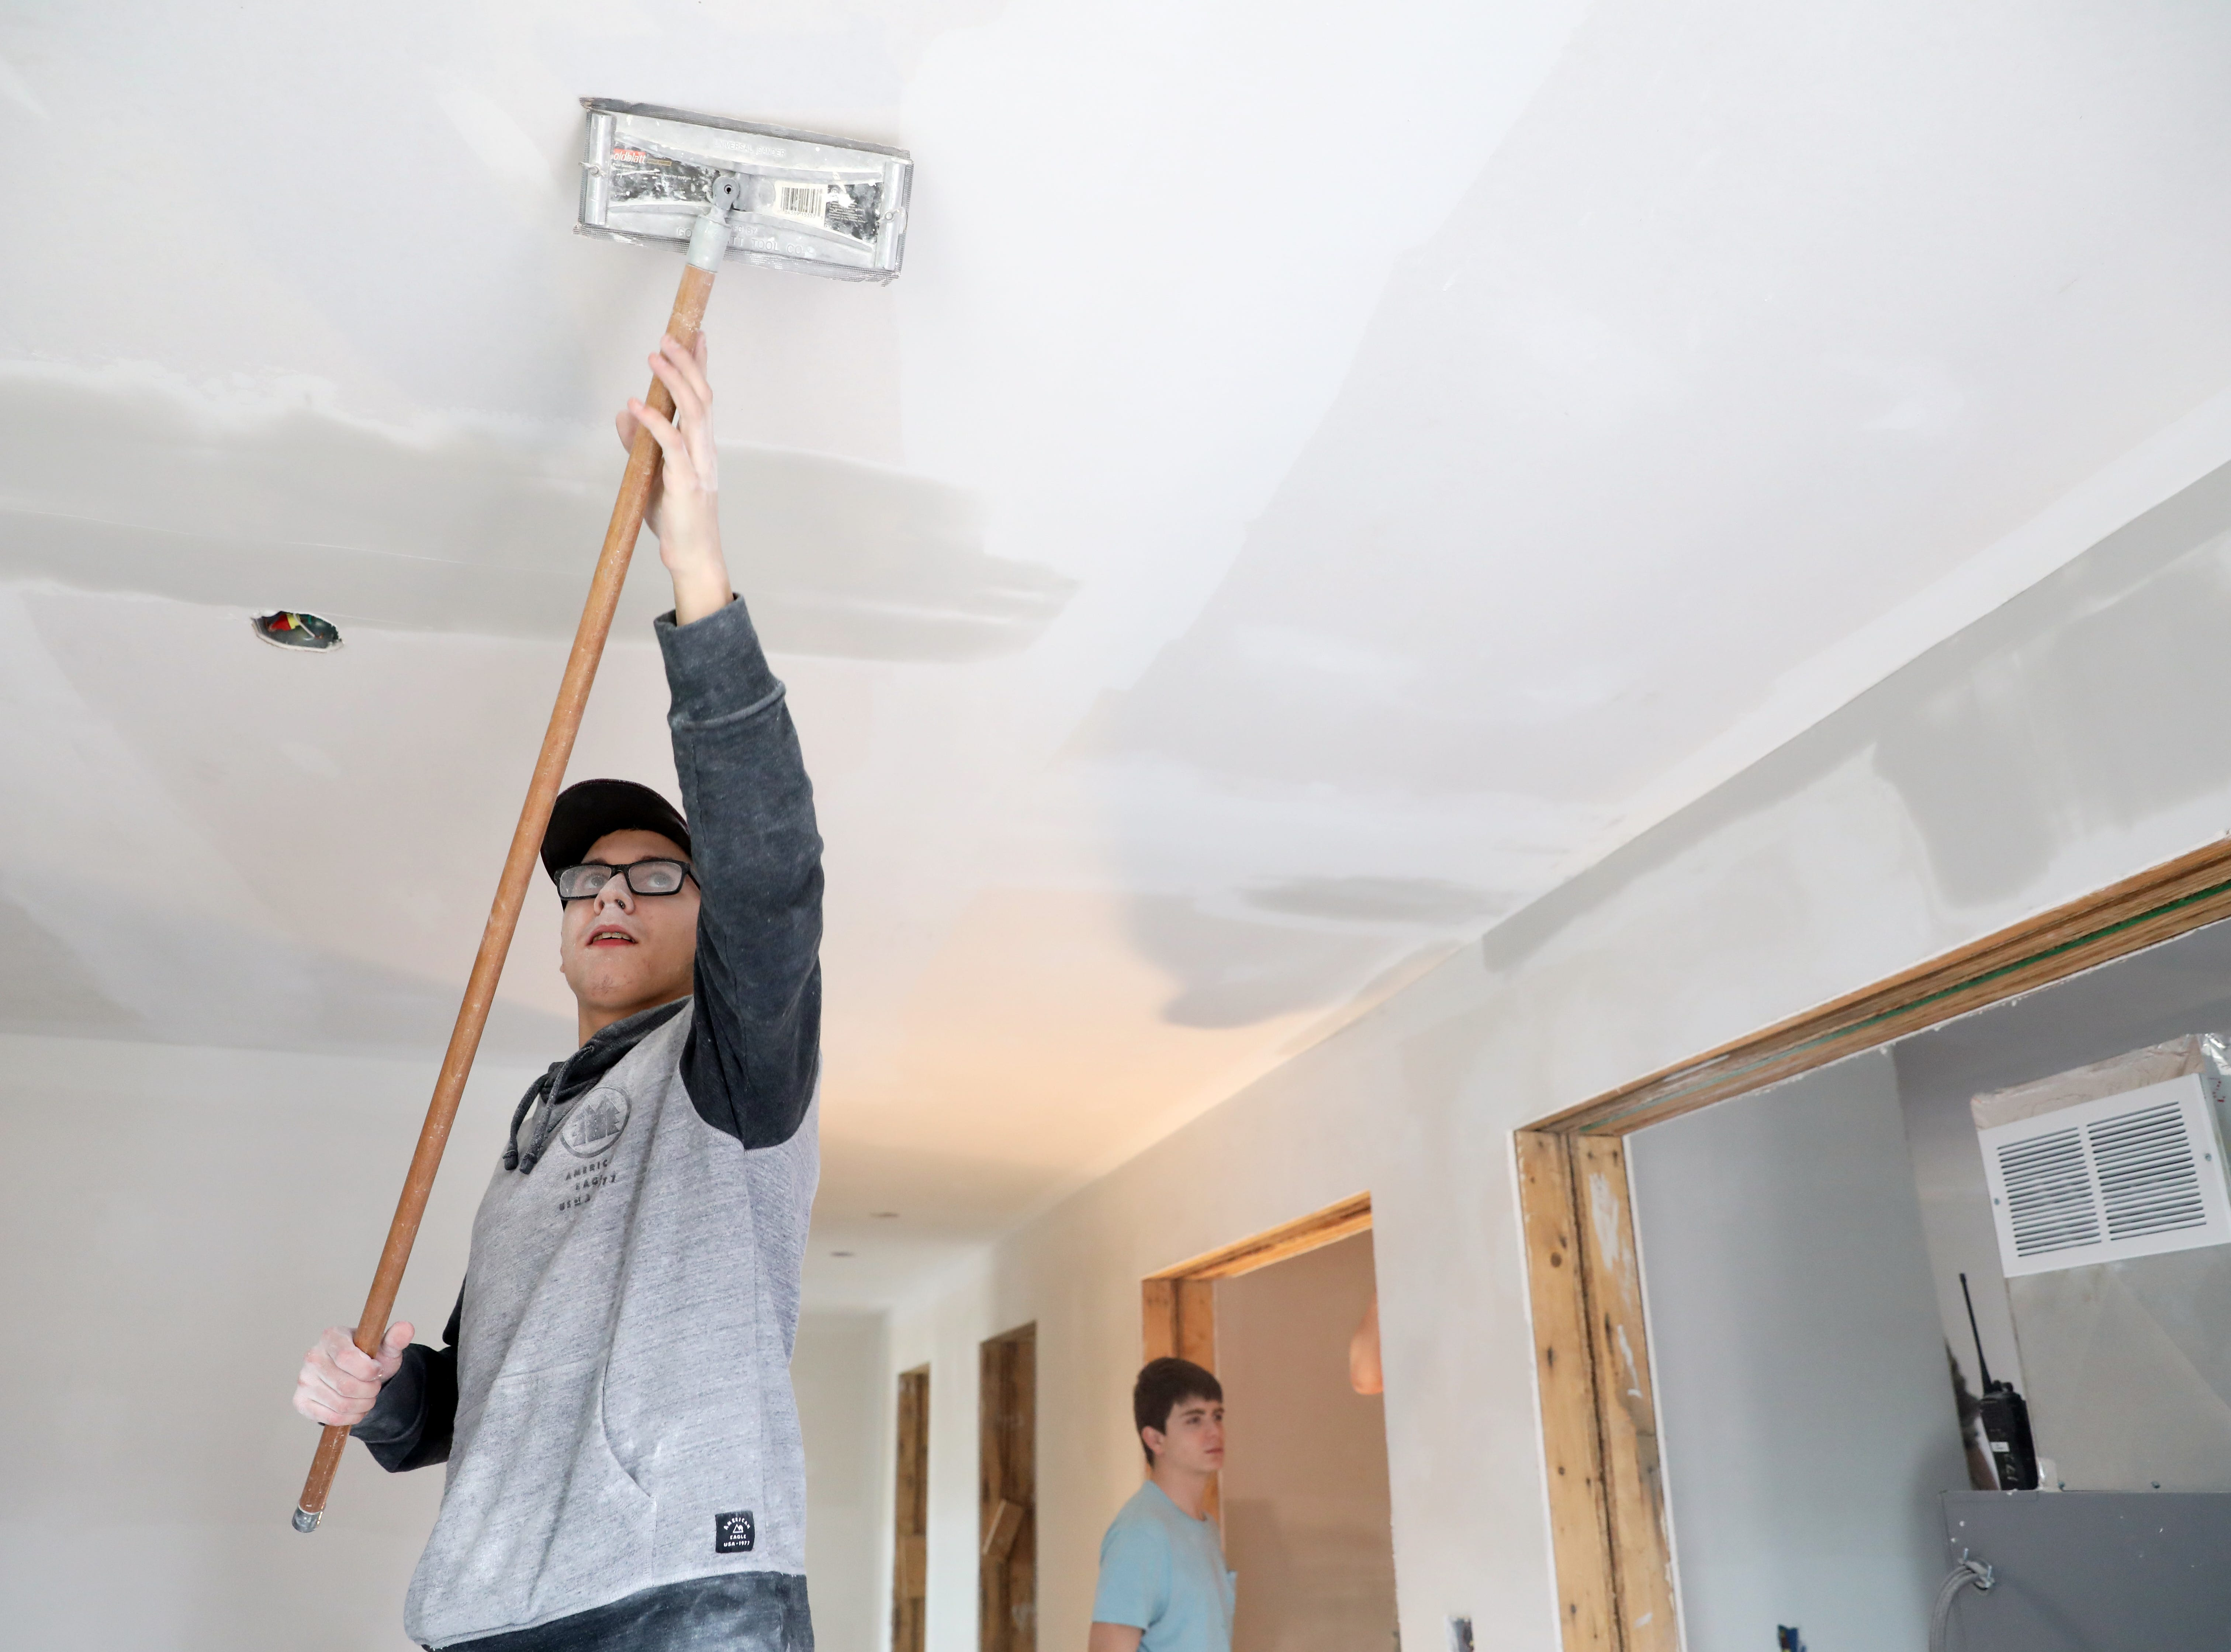 Colton Woodward a Mid-East student from John Glenn High School, works on drywall in a house the carpentry program Mid-East Career and Technology Center is building for Habitat for Humanity.